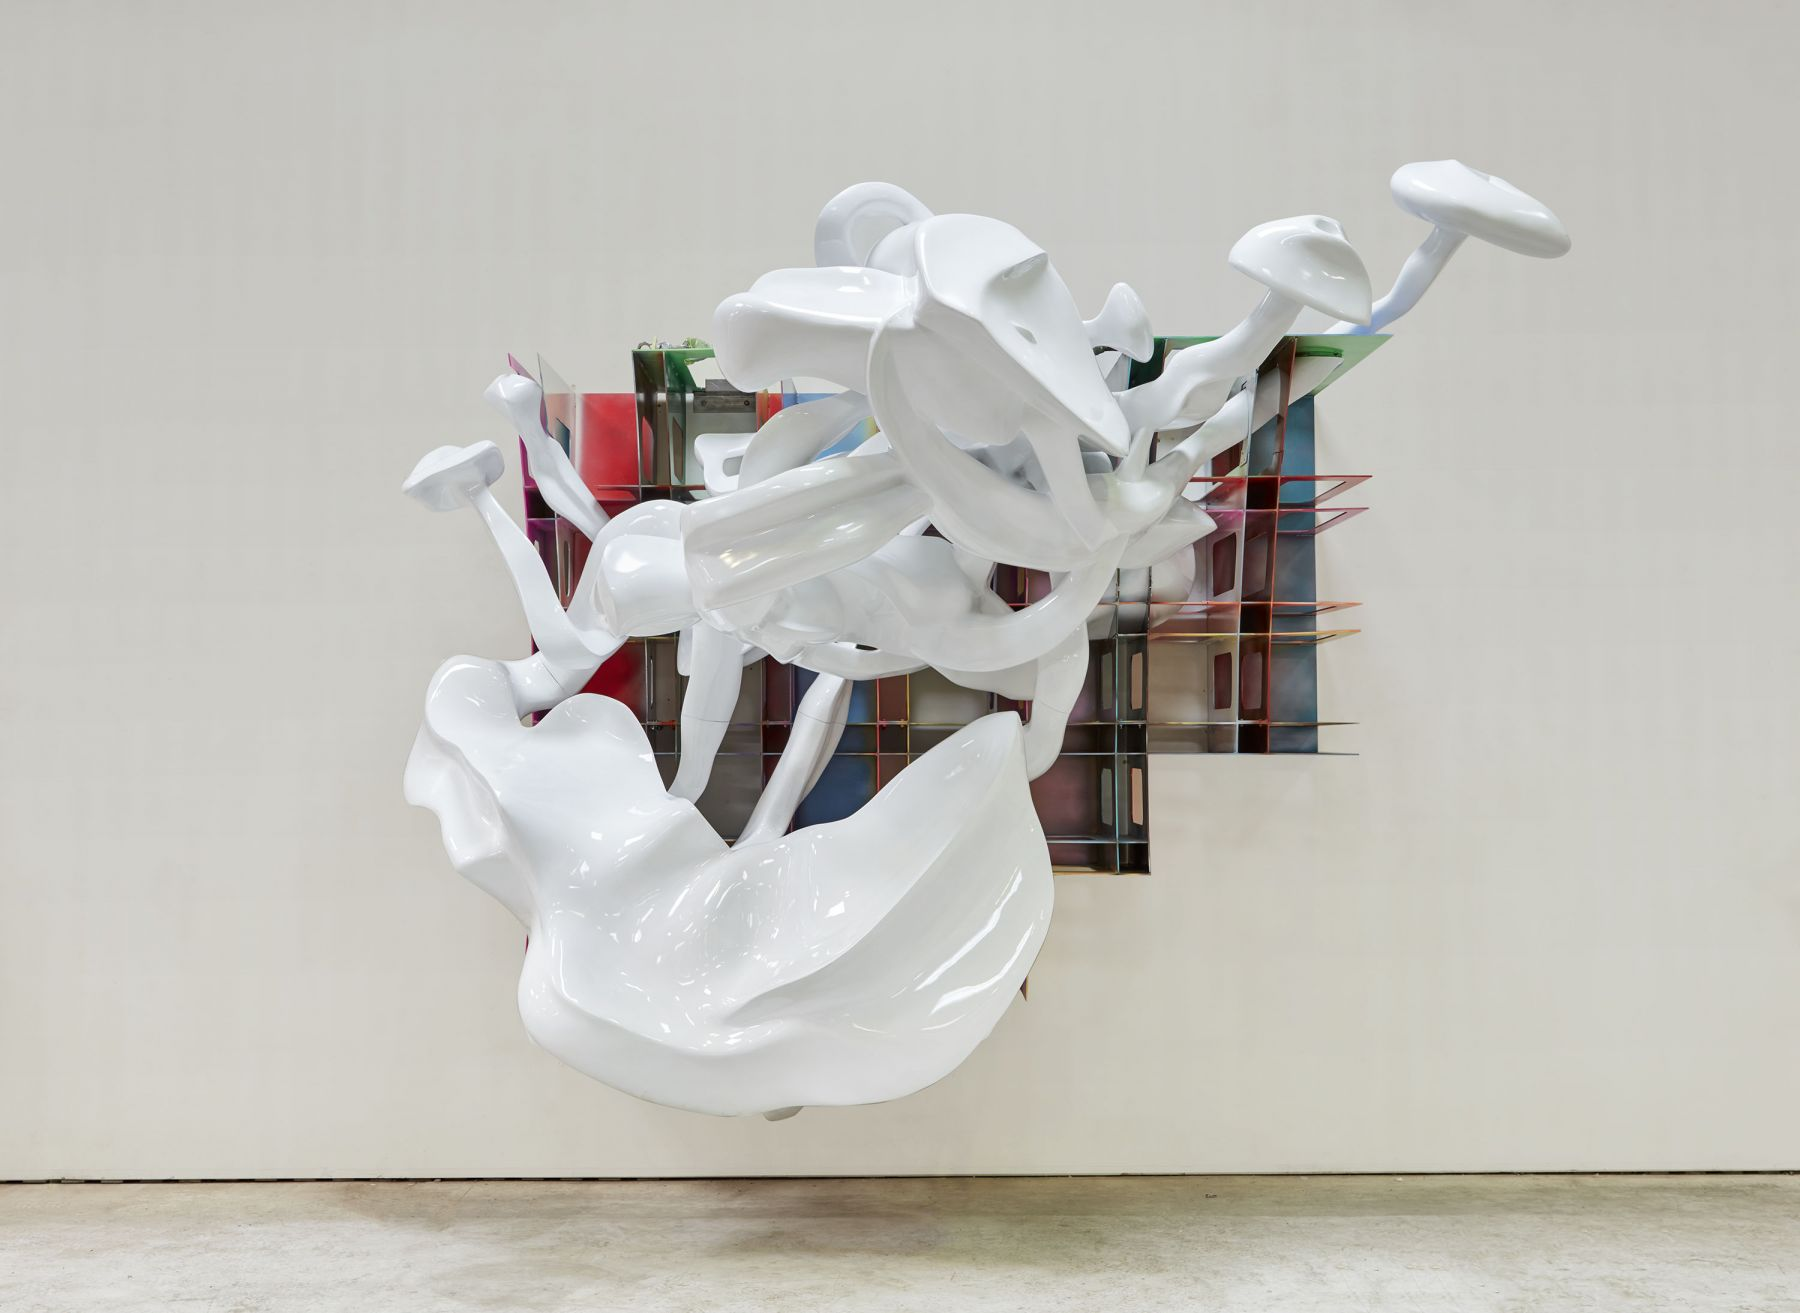 a large sculpture with smoke rings by frank stella